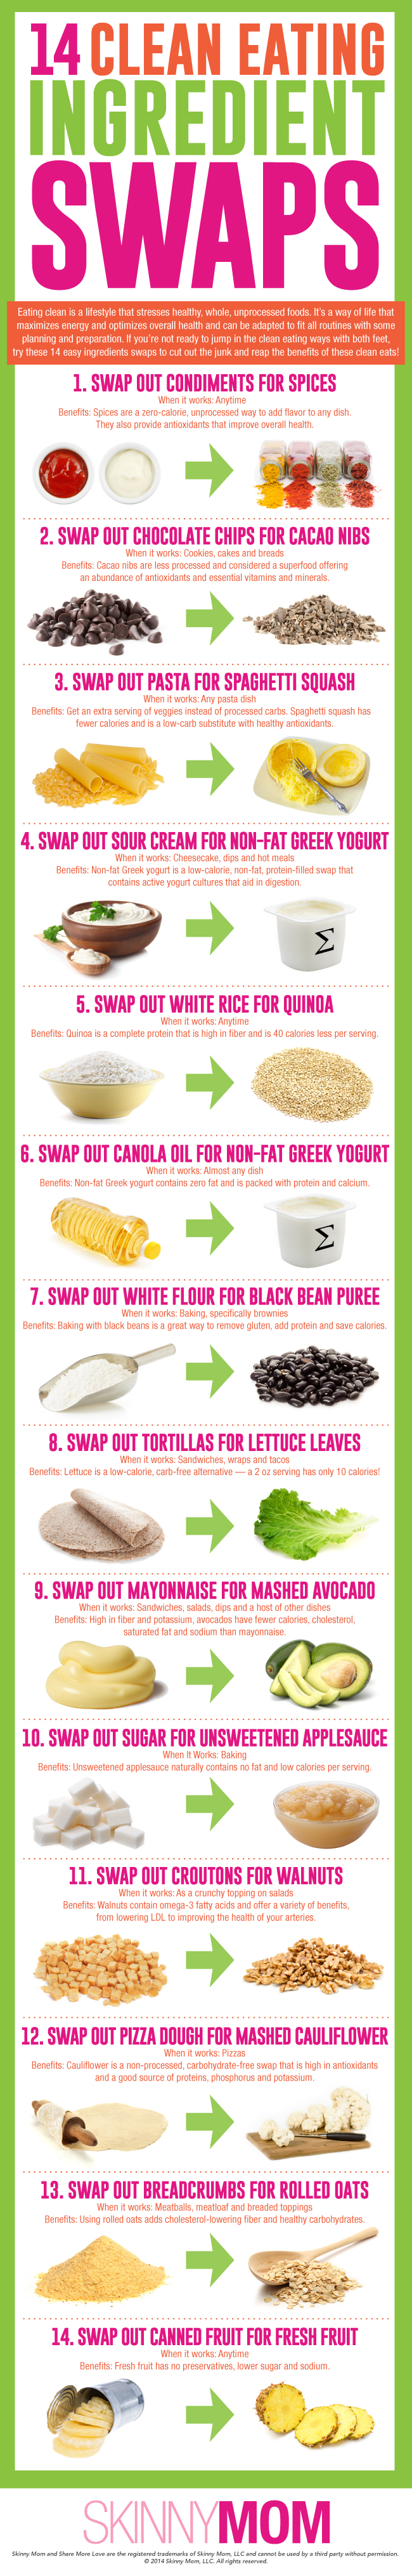 14 Clean Eating Ingredient Swaps For All Your Culinary Needs Infographic